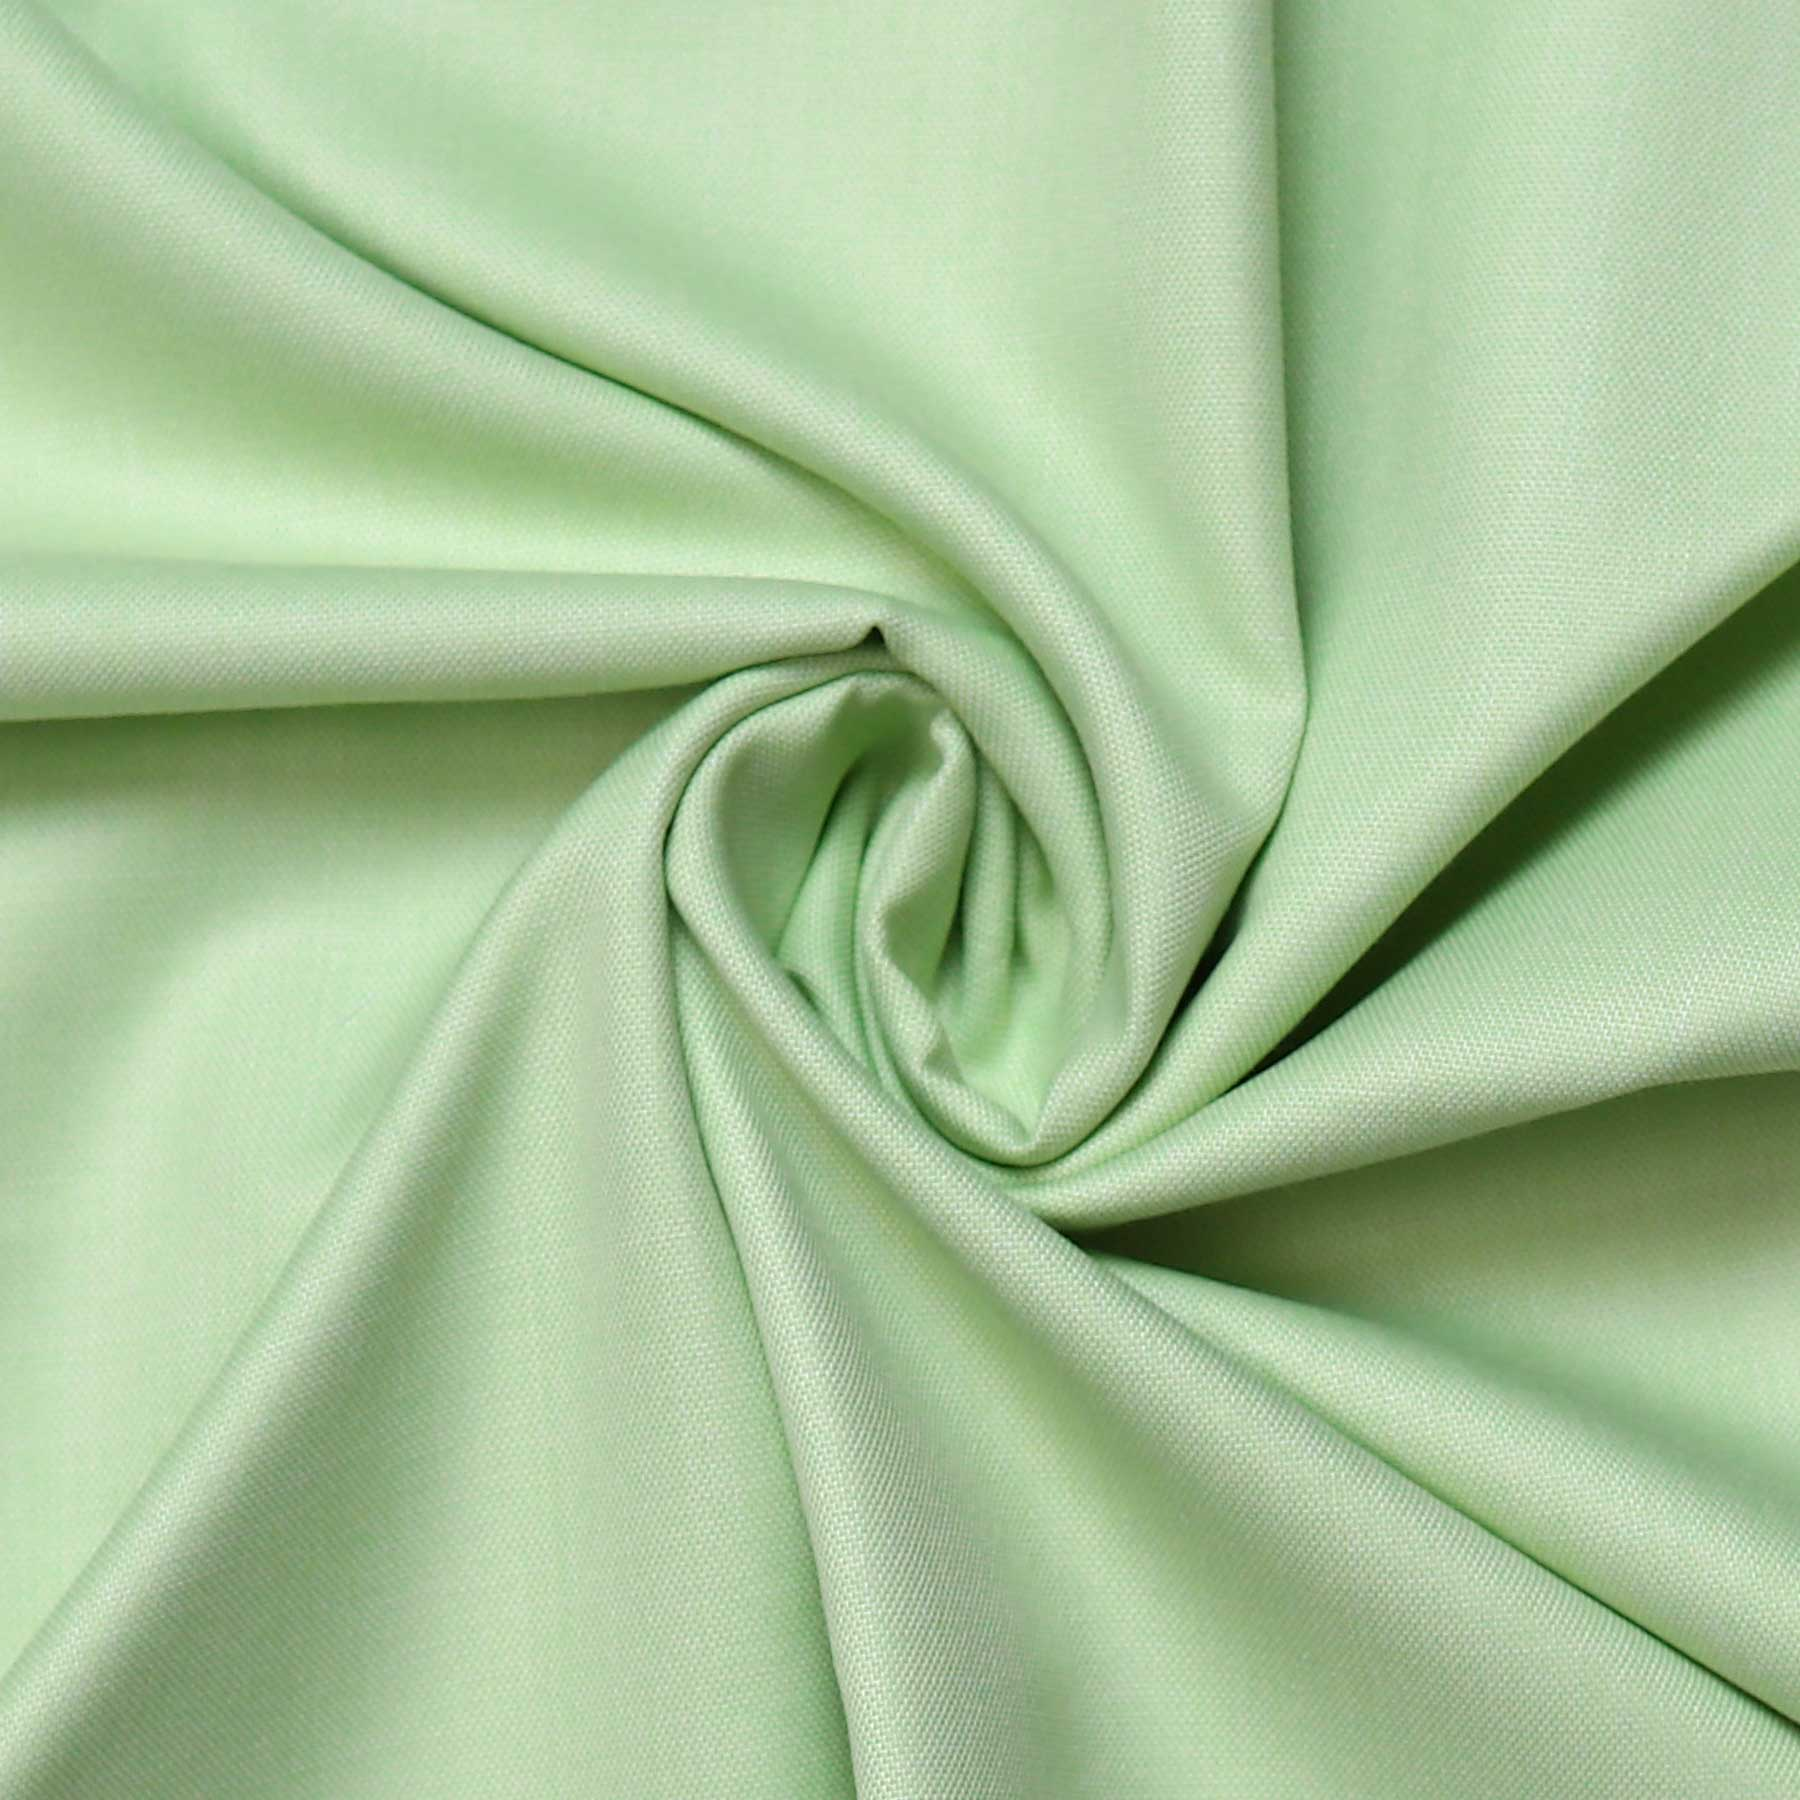 Apple Green Solid Men's Cotton Unstitched Office Uniform Shirt Fabrics